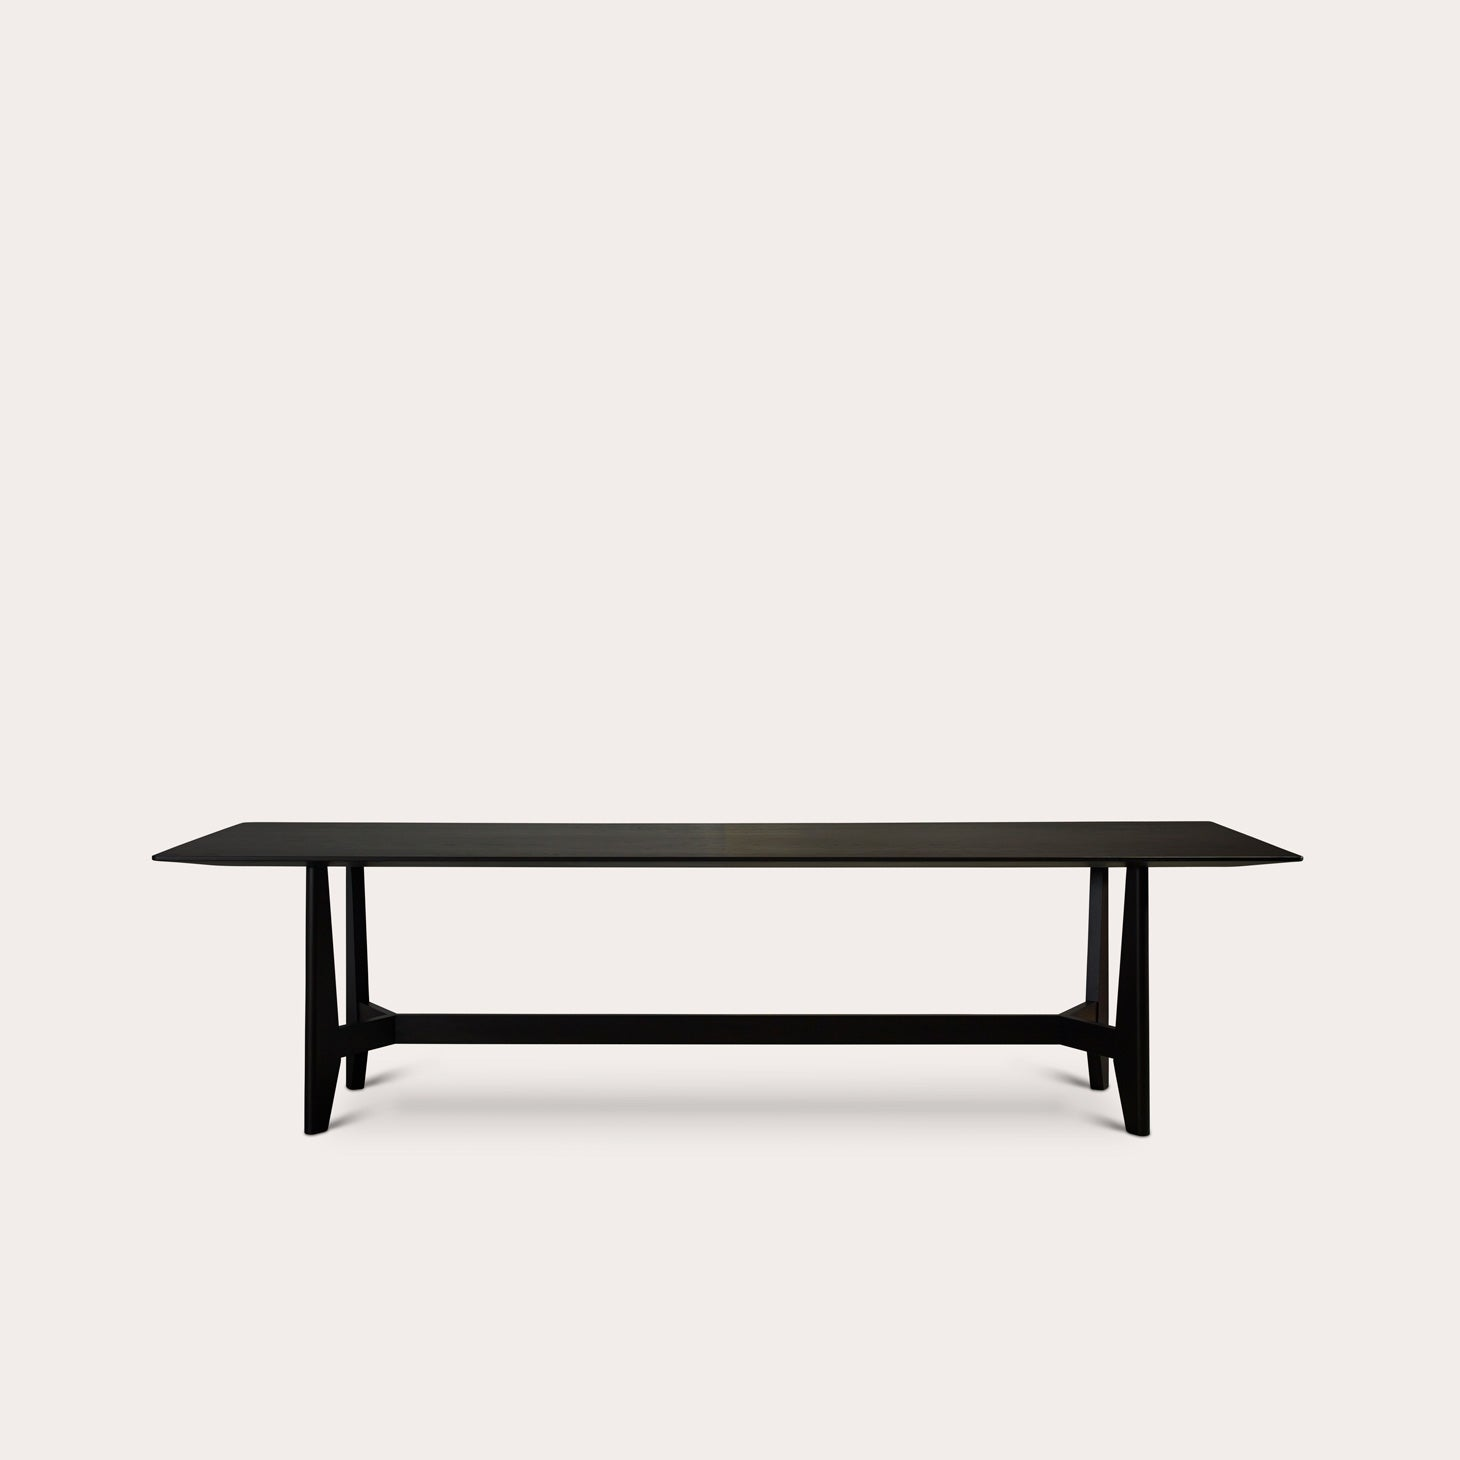 Yke Dining Table Tables Piet Boon Designer Furniture Sku: 784-230-10032